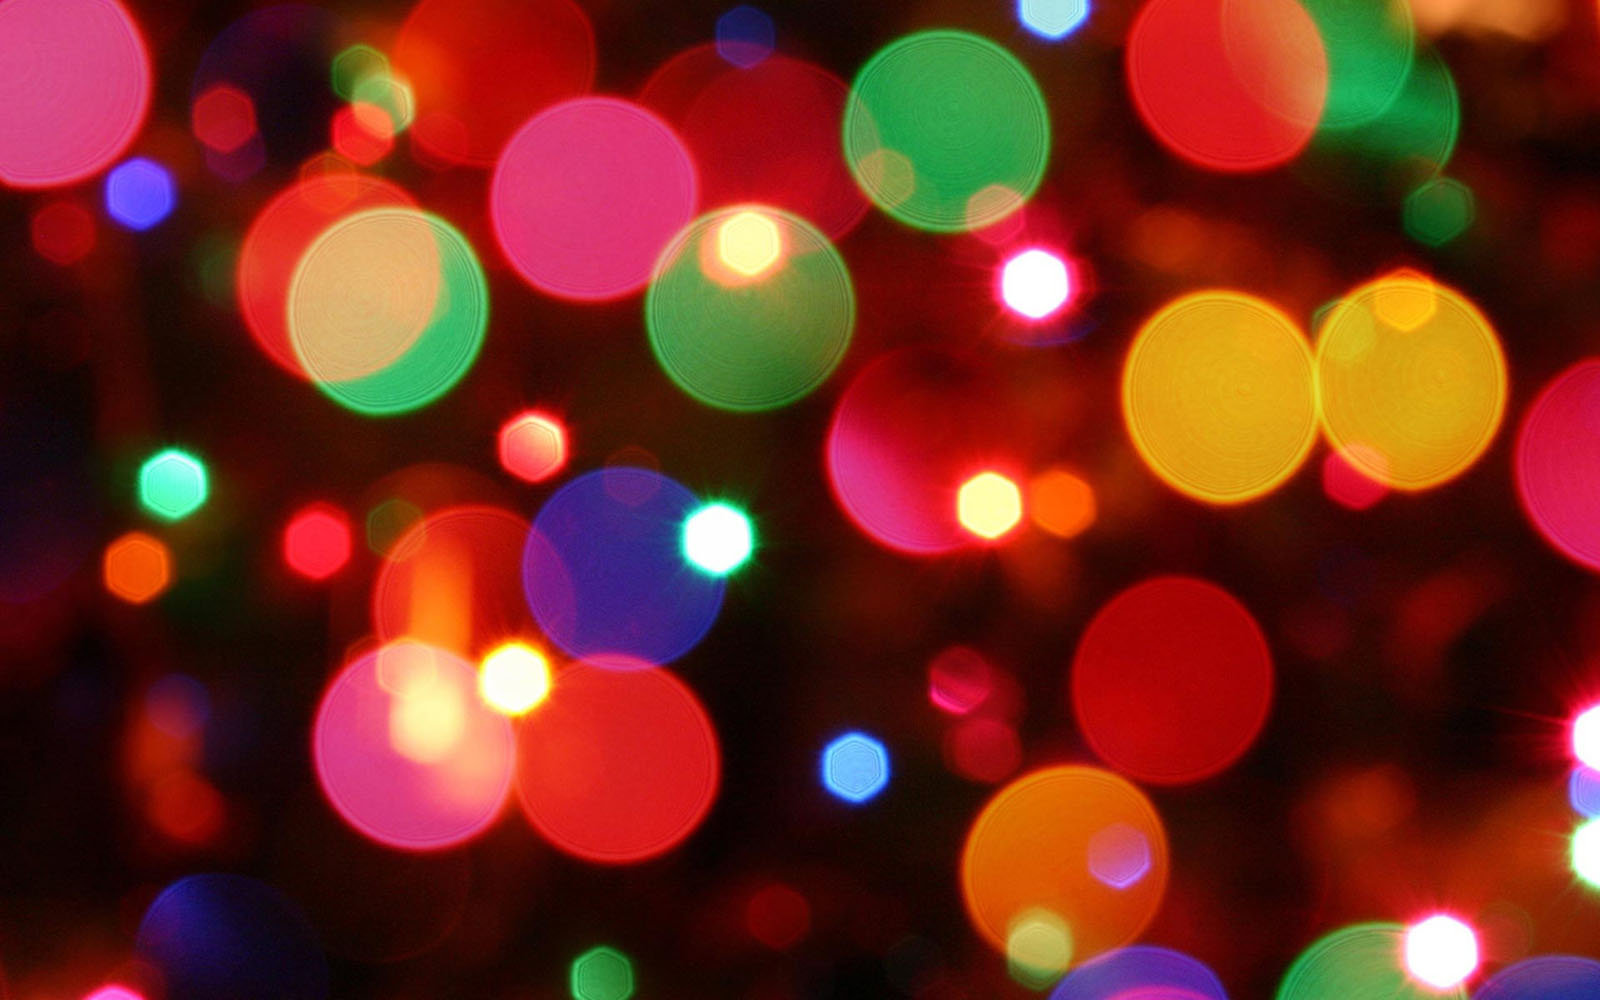 colorful lights 34019